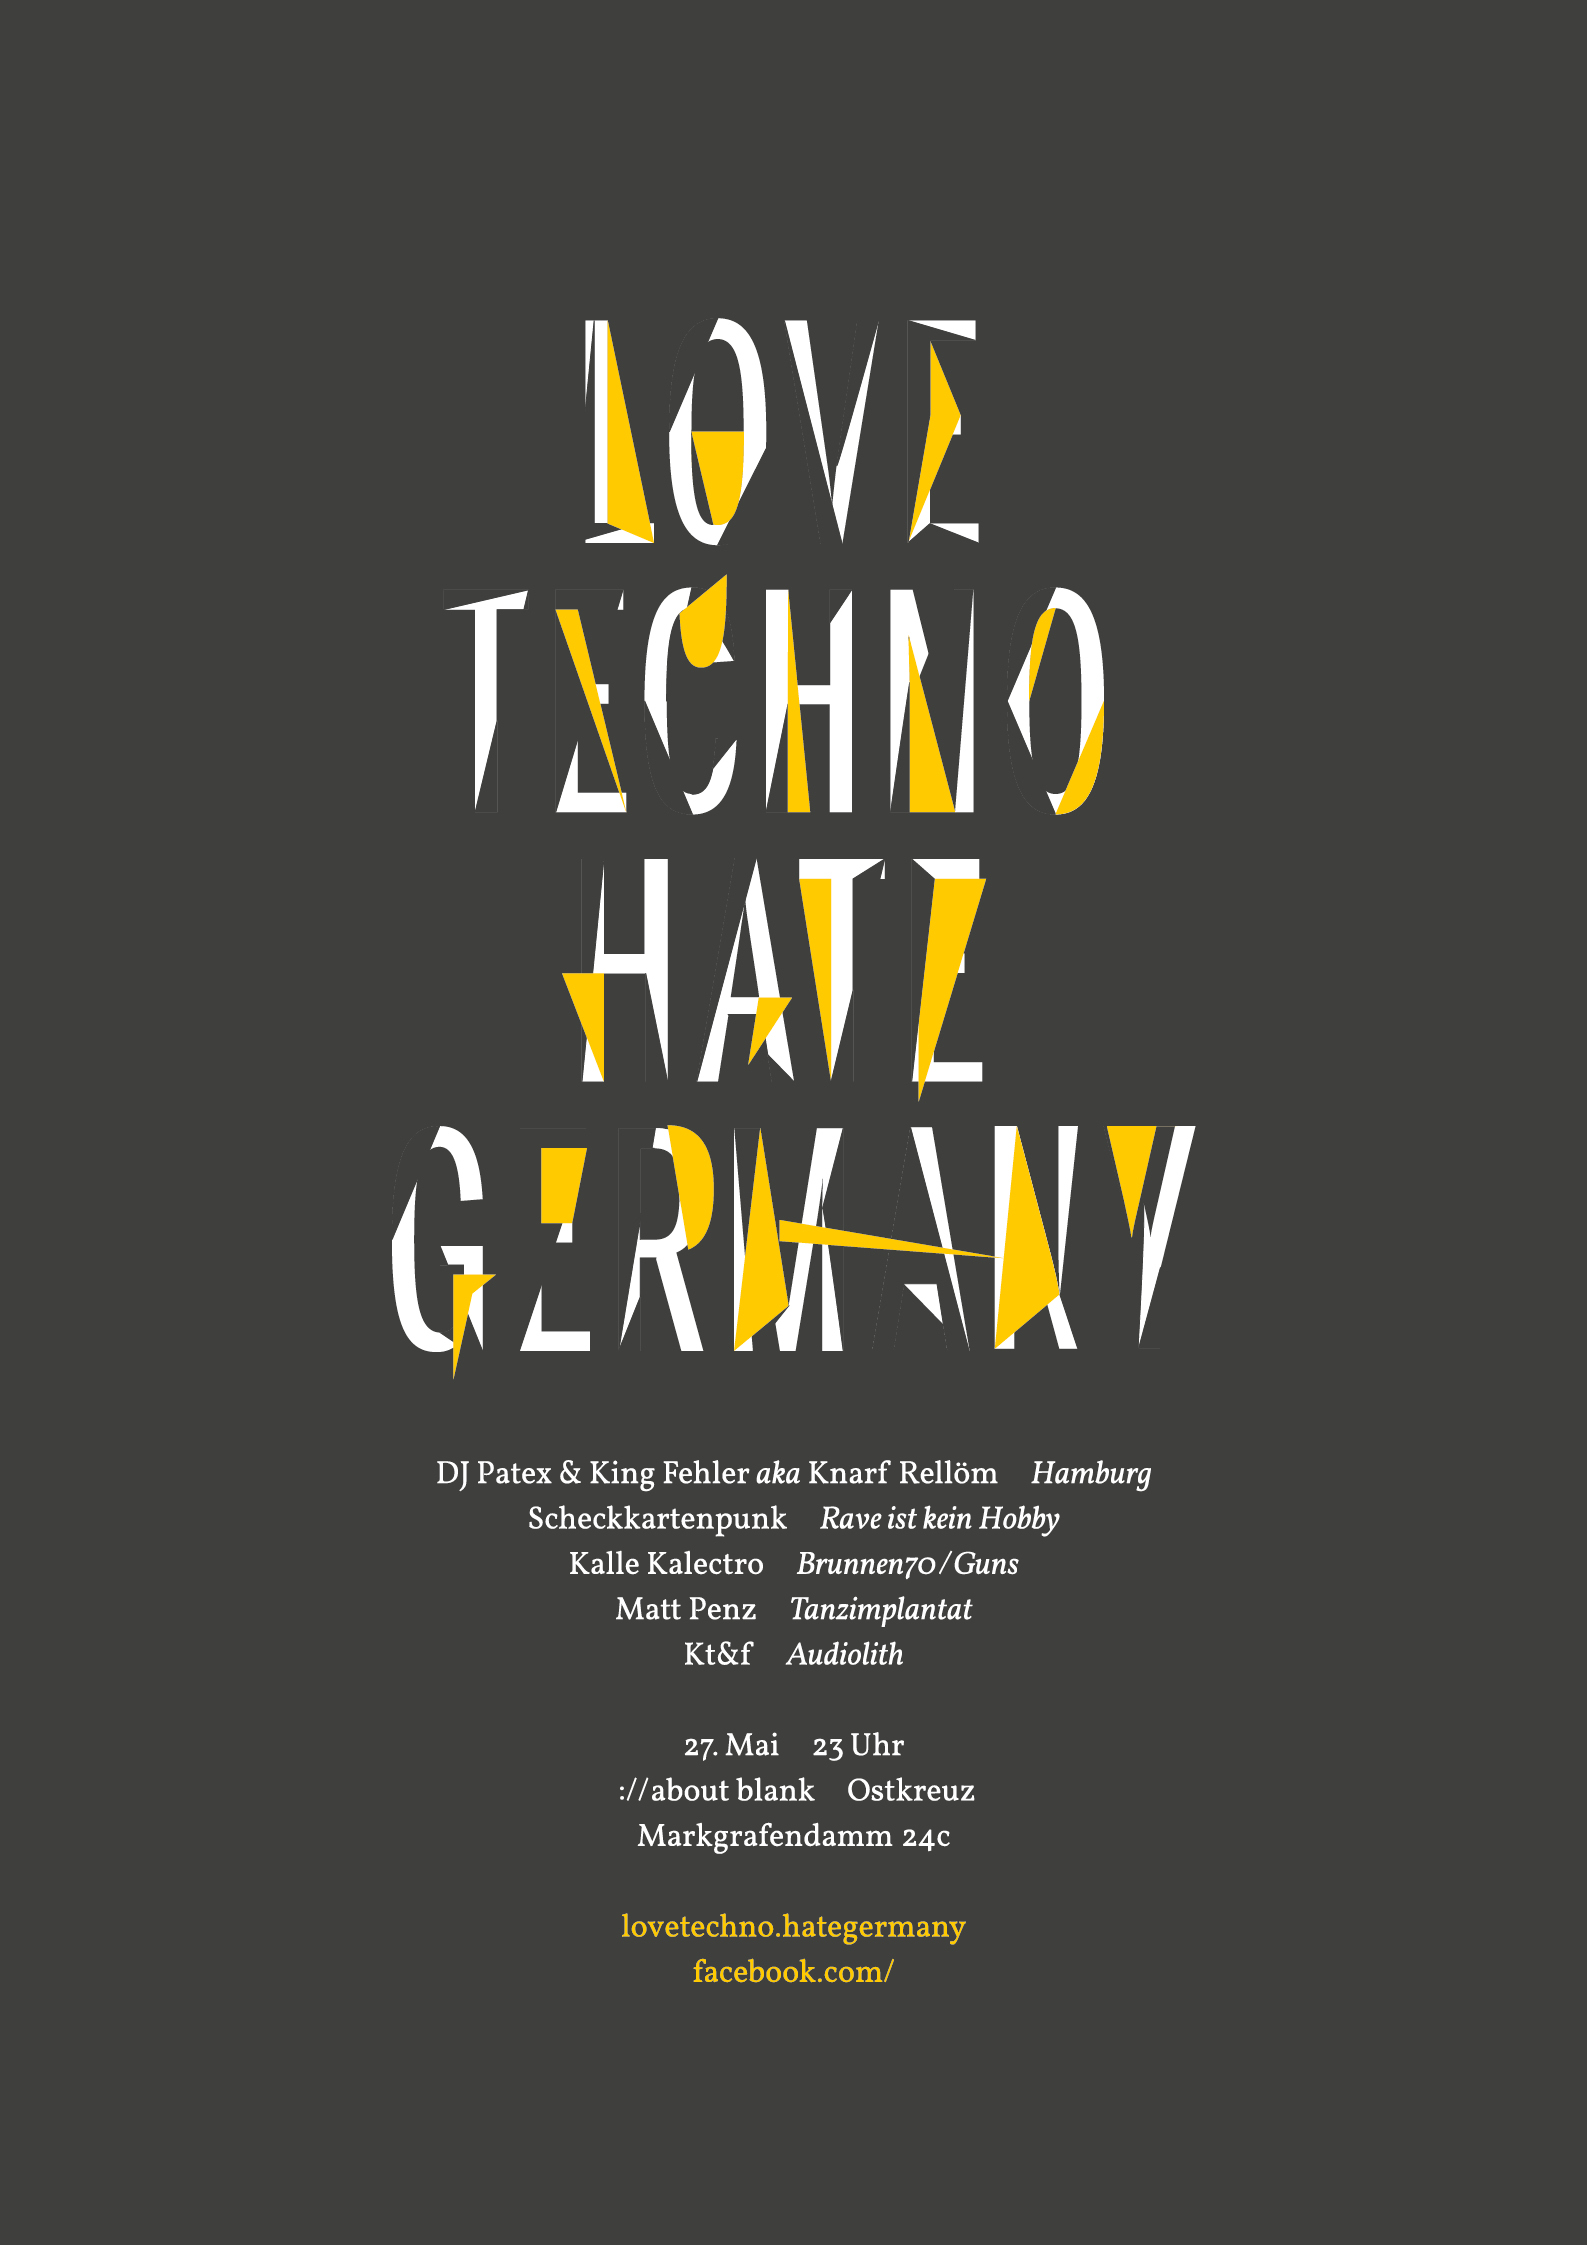 love techno - hate germany